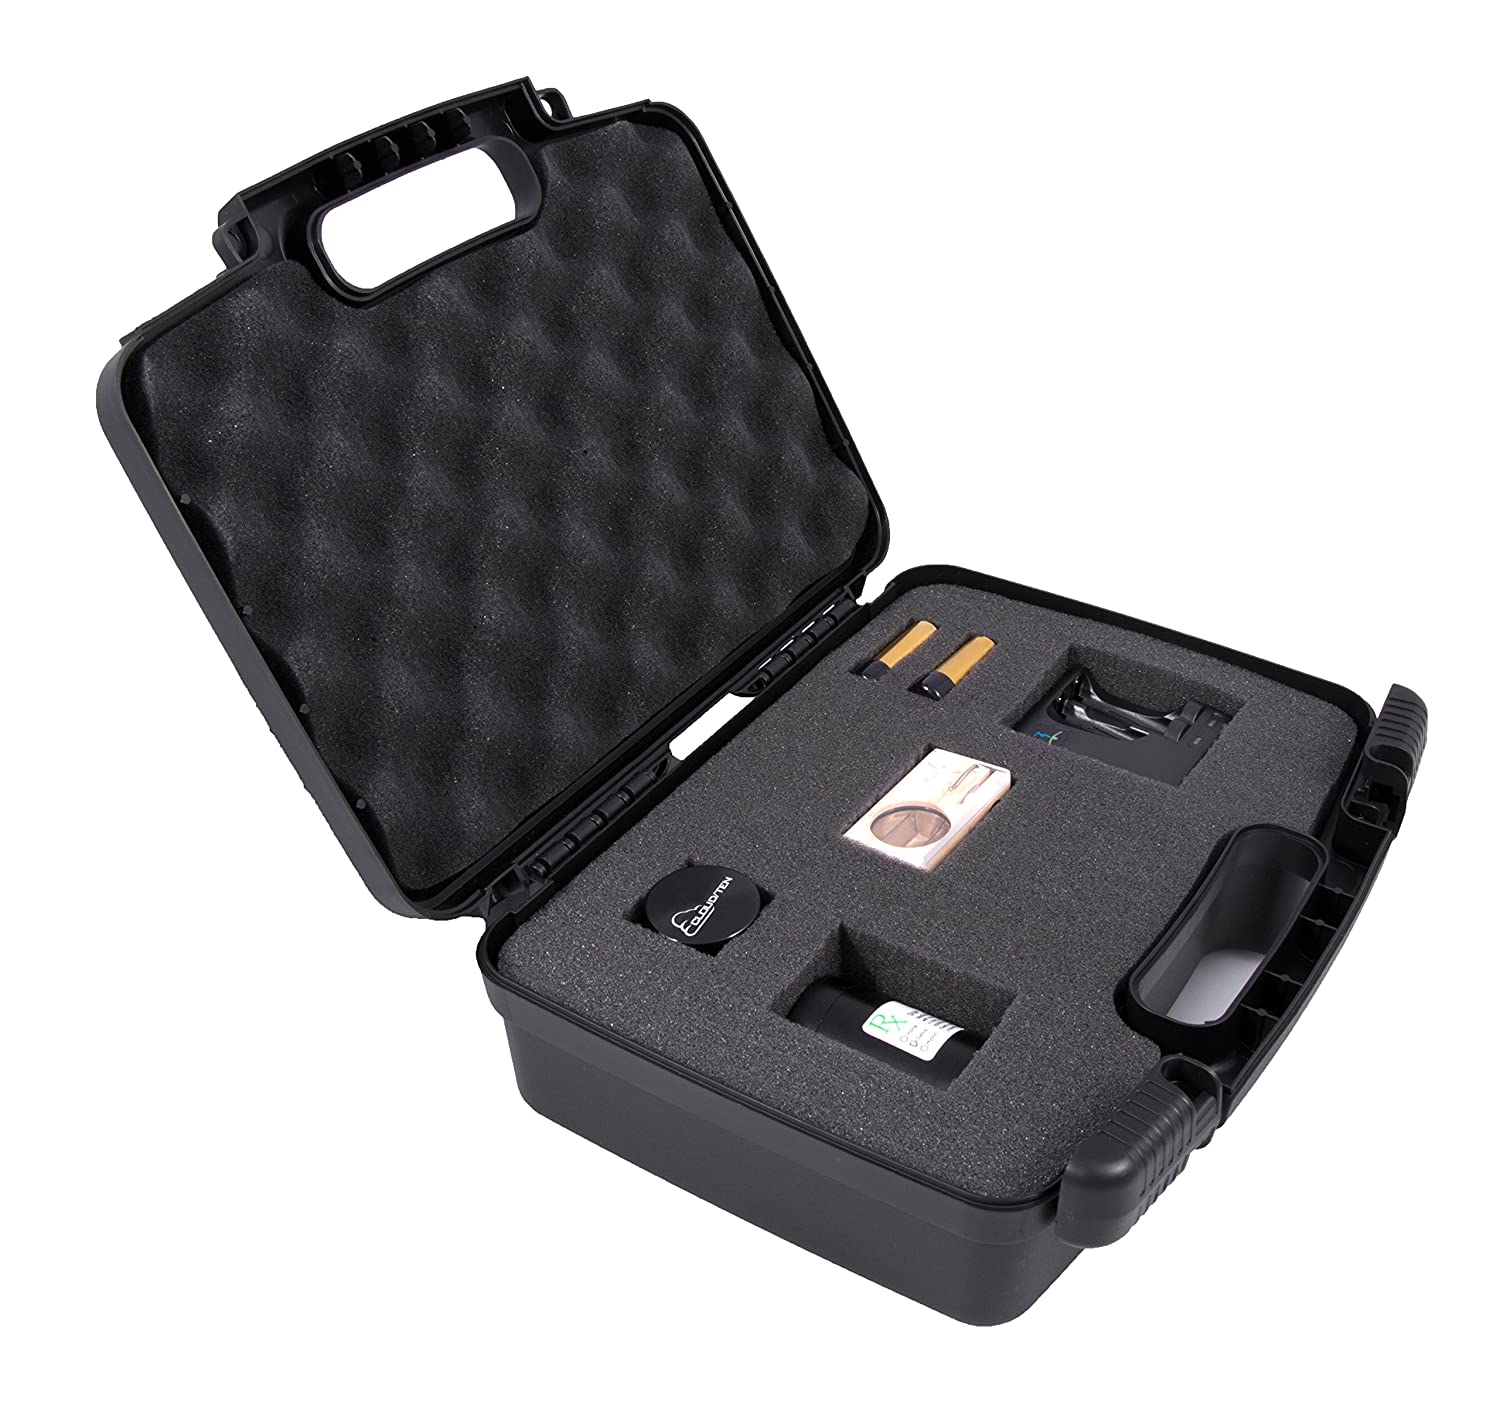 casematix discreto duro caja de funda de transporte - compatible con Magic Flight Launch Box, molinillo de acabado, bandejas, recargable, tallo, cargador, ...